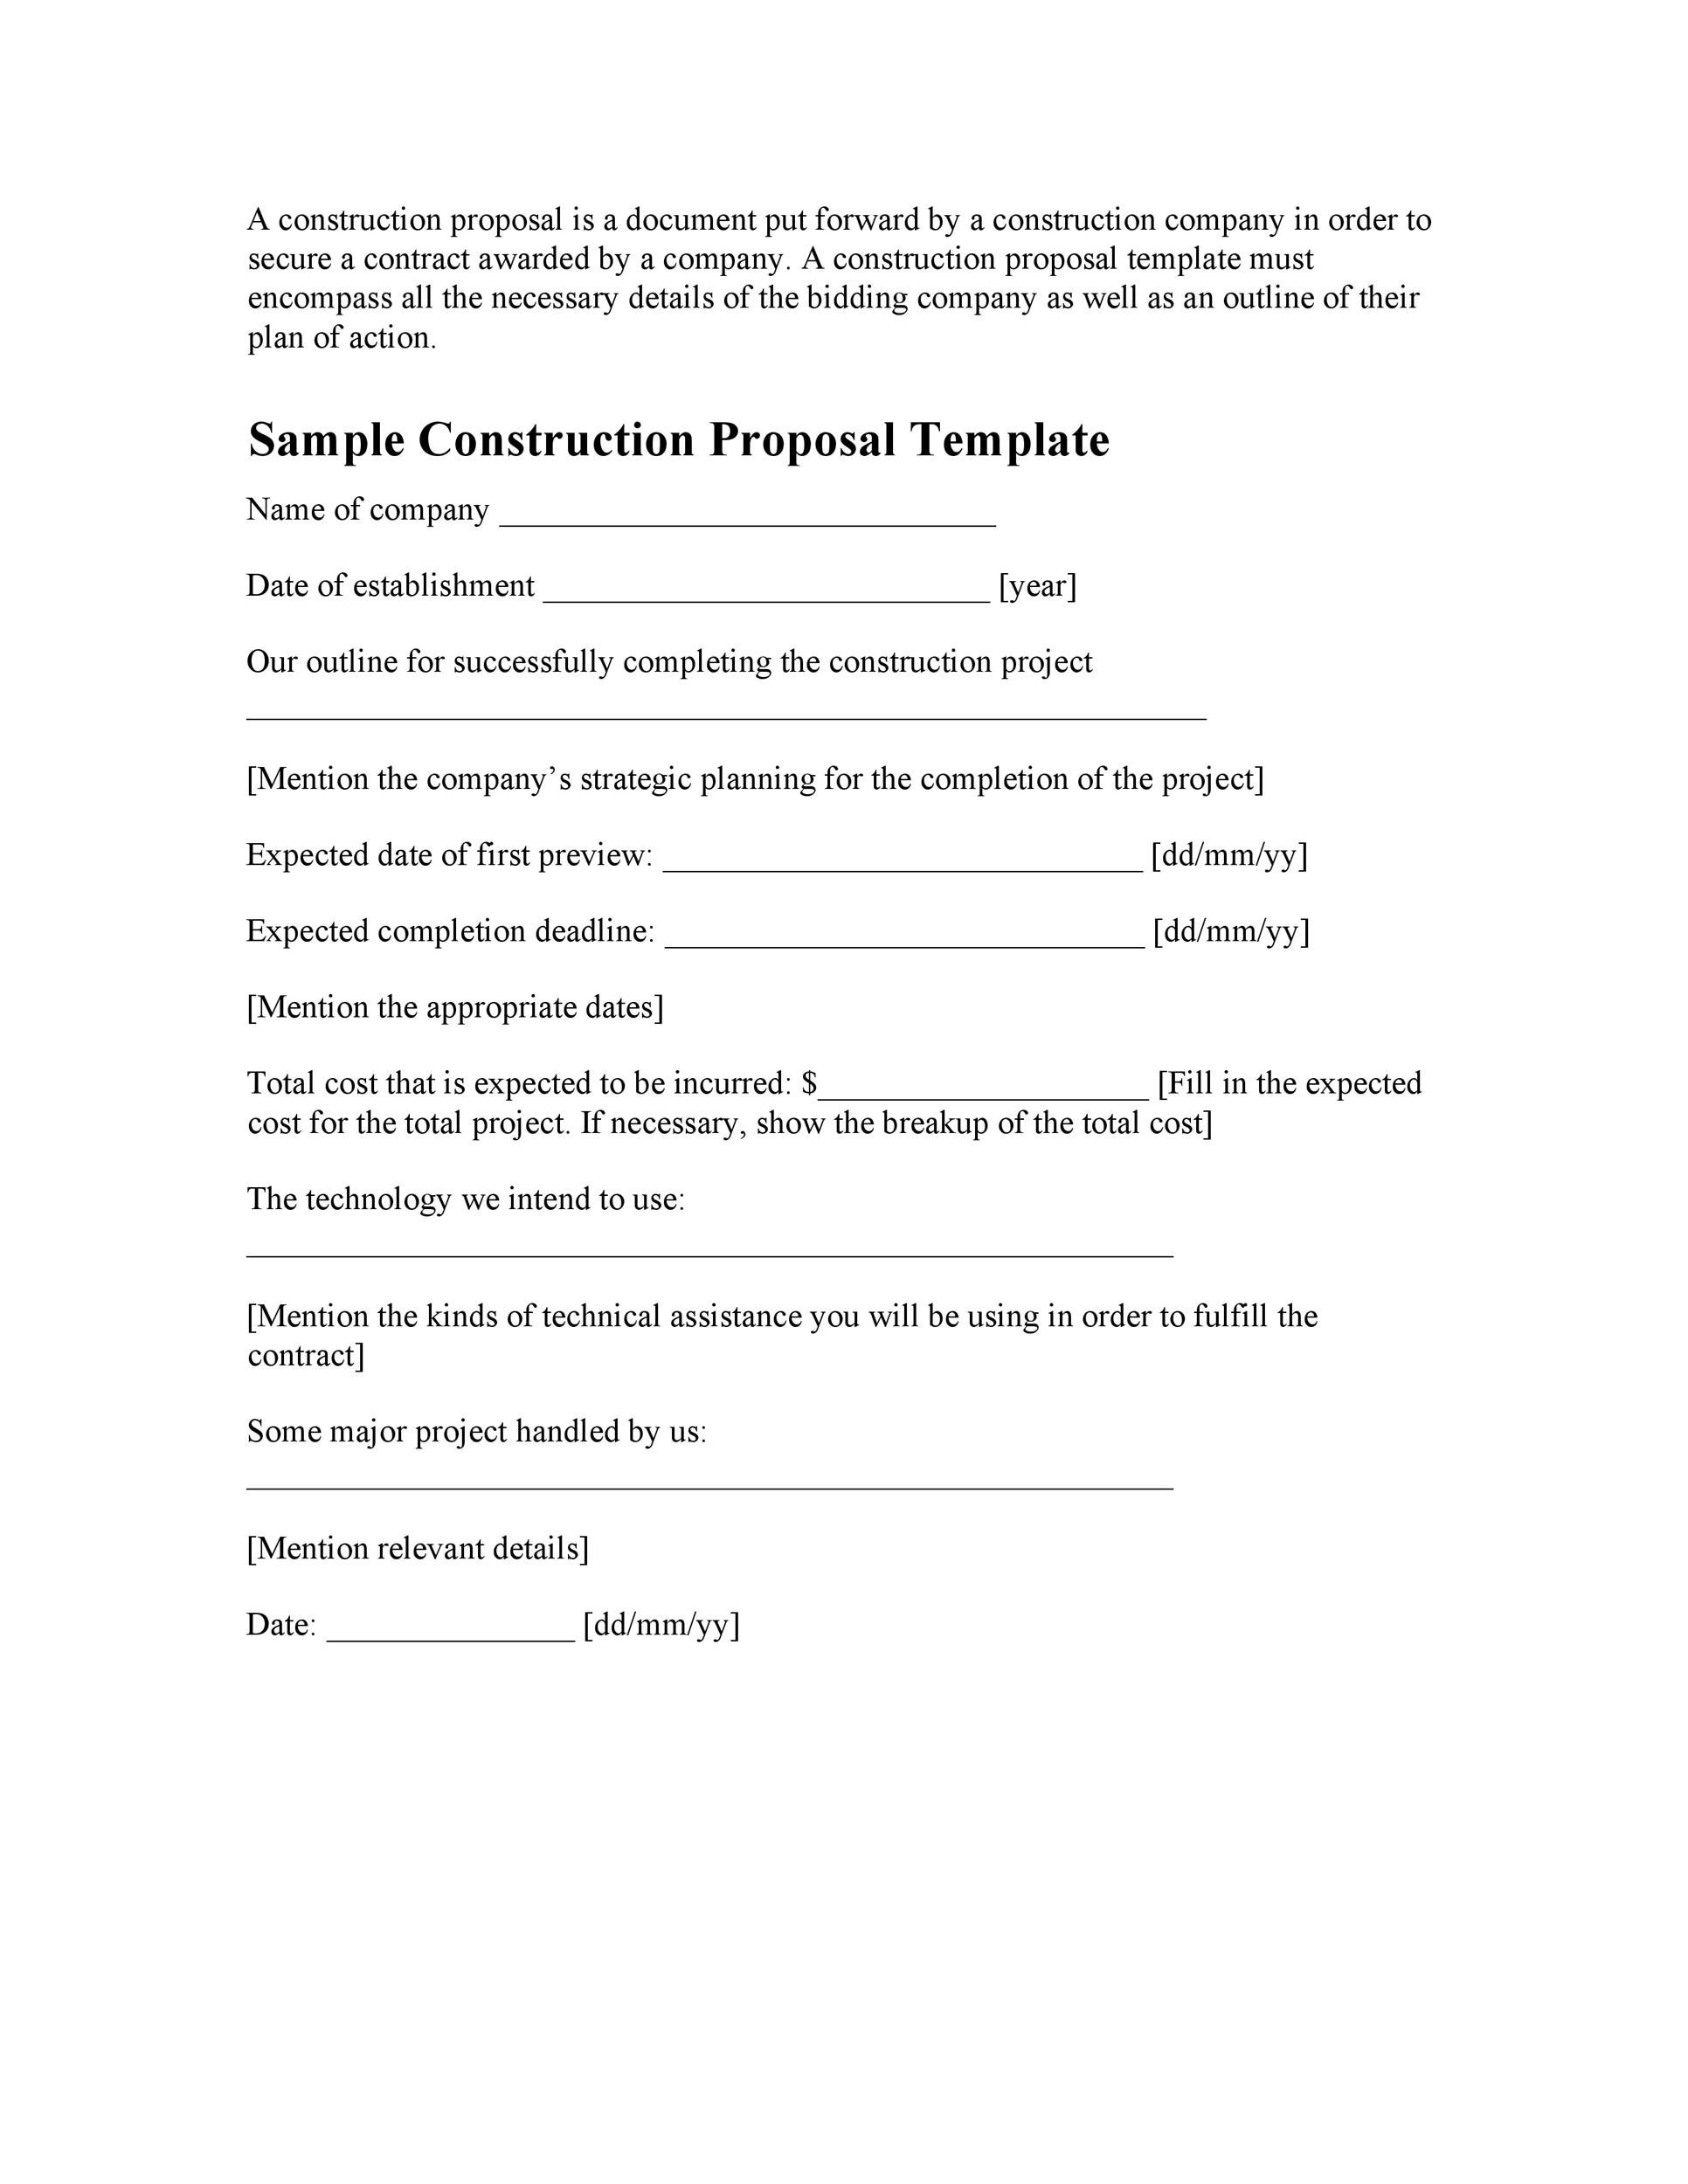 Free construction proposal template 04